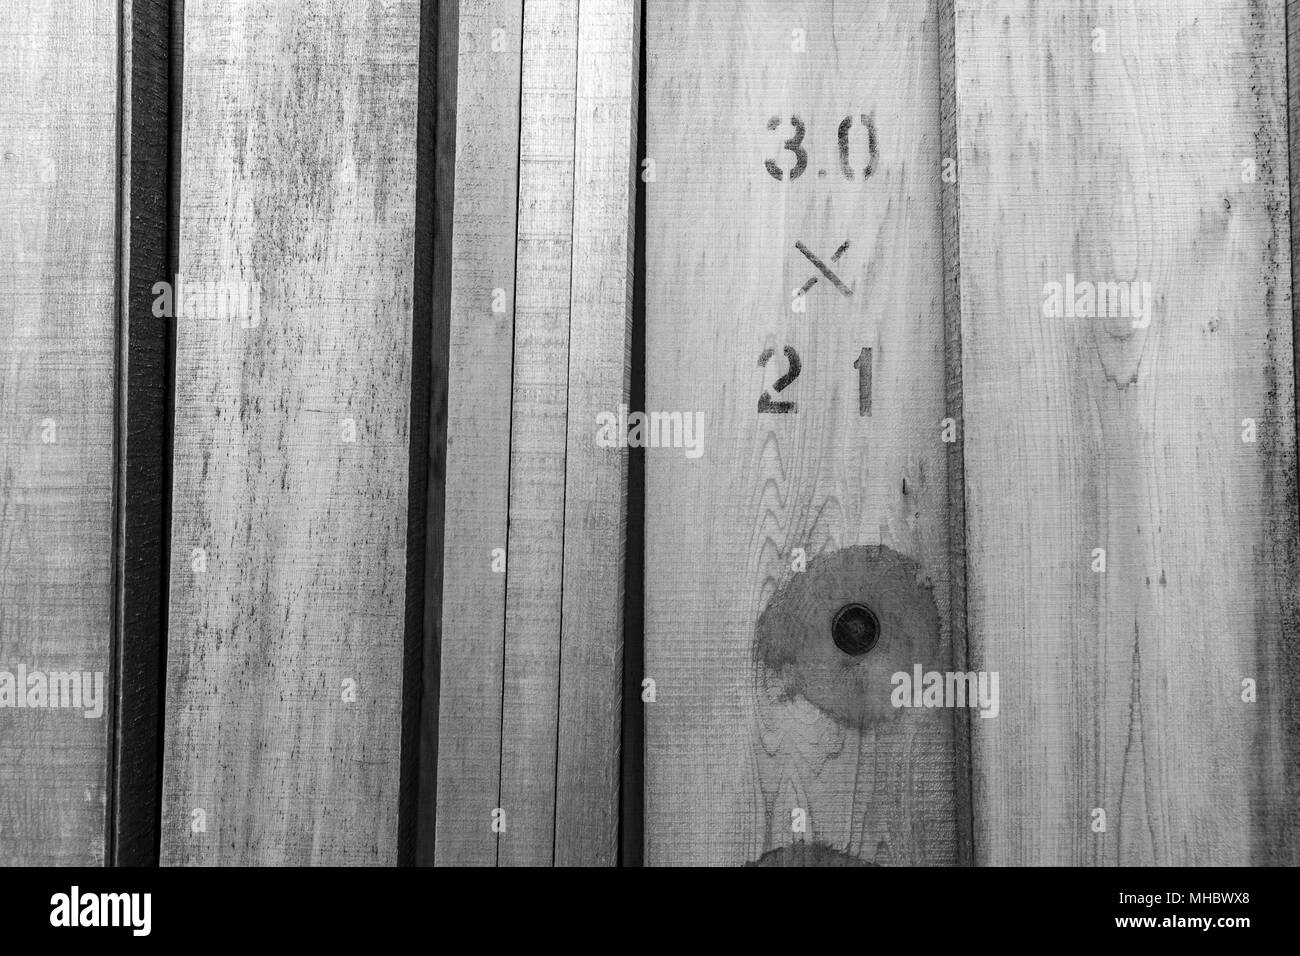 30 x 21; timber, standing; Tokyo, Japan (black and white) - Stock Image